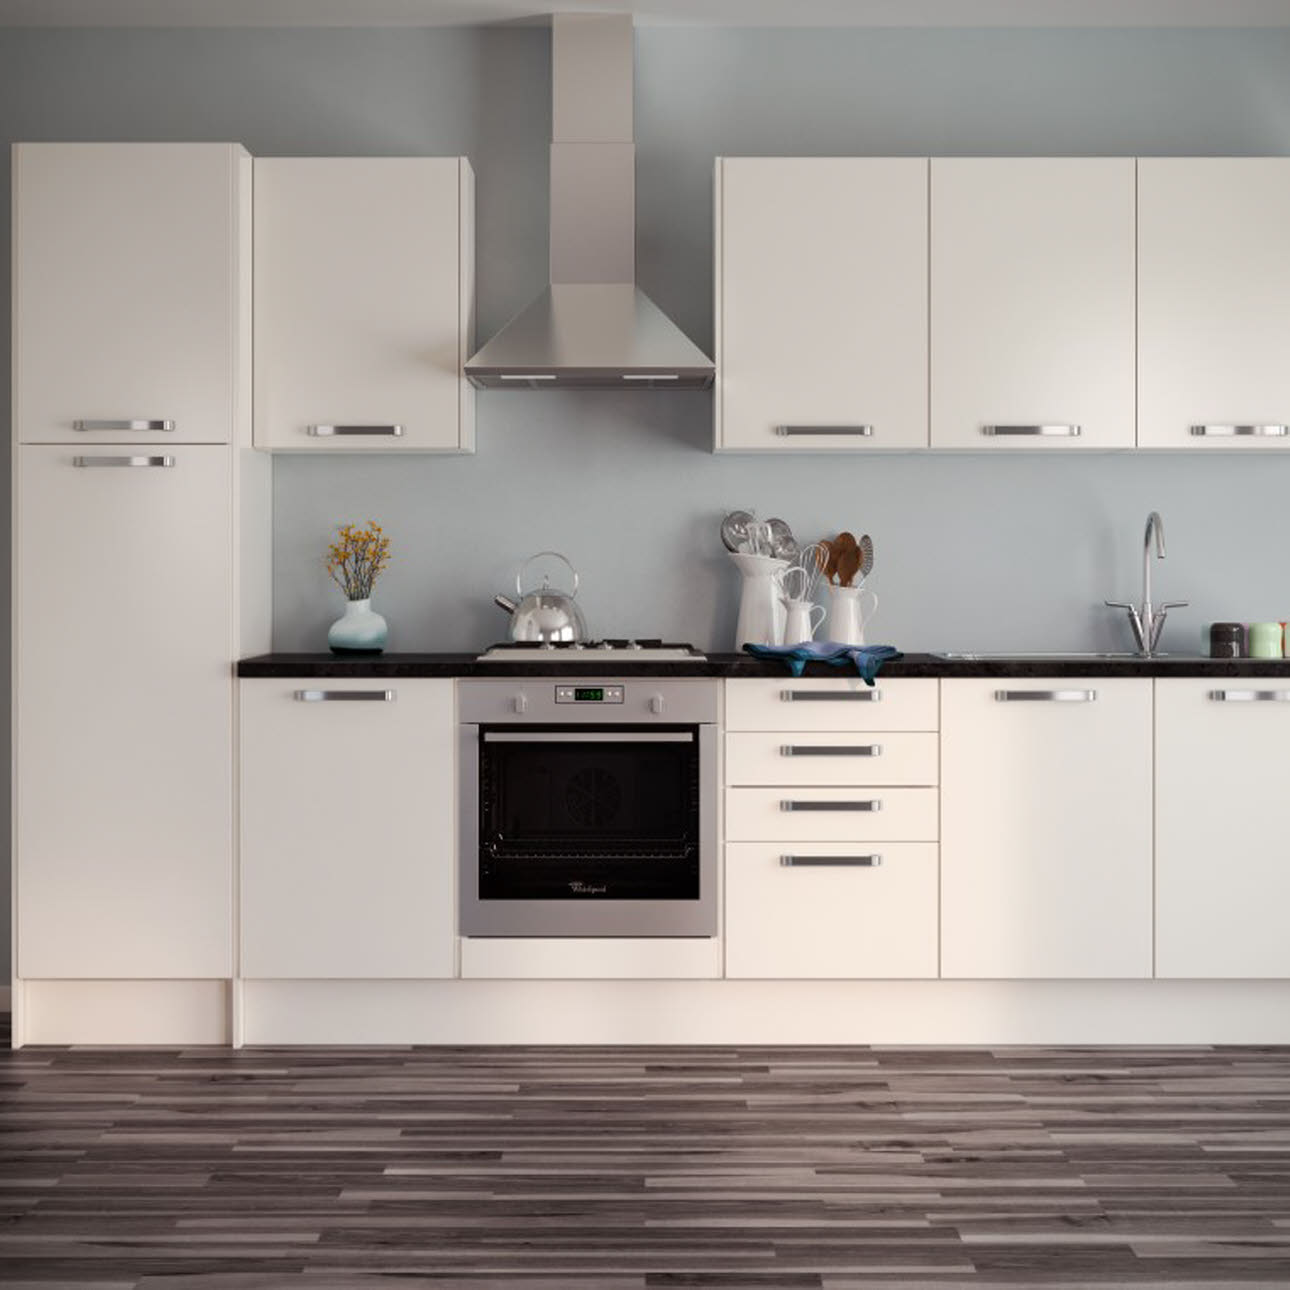 Strata Gloss Cream slab kitchen